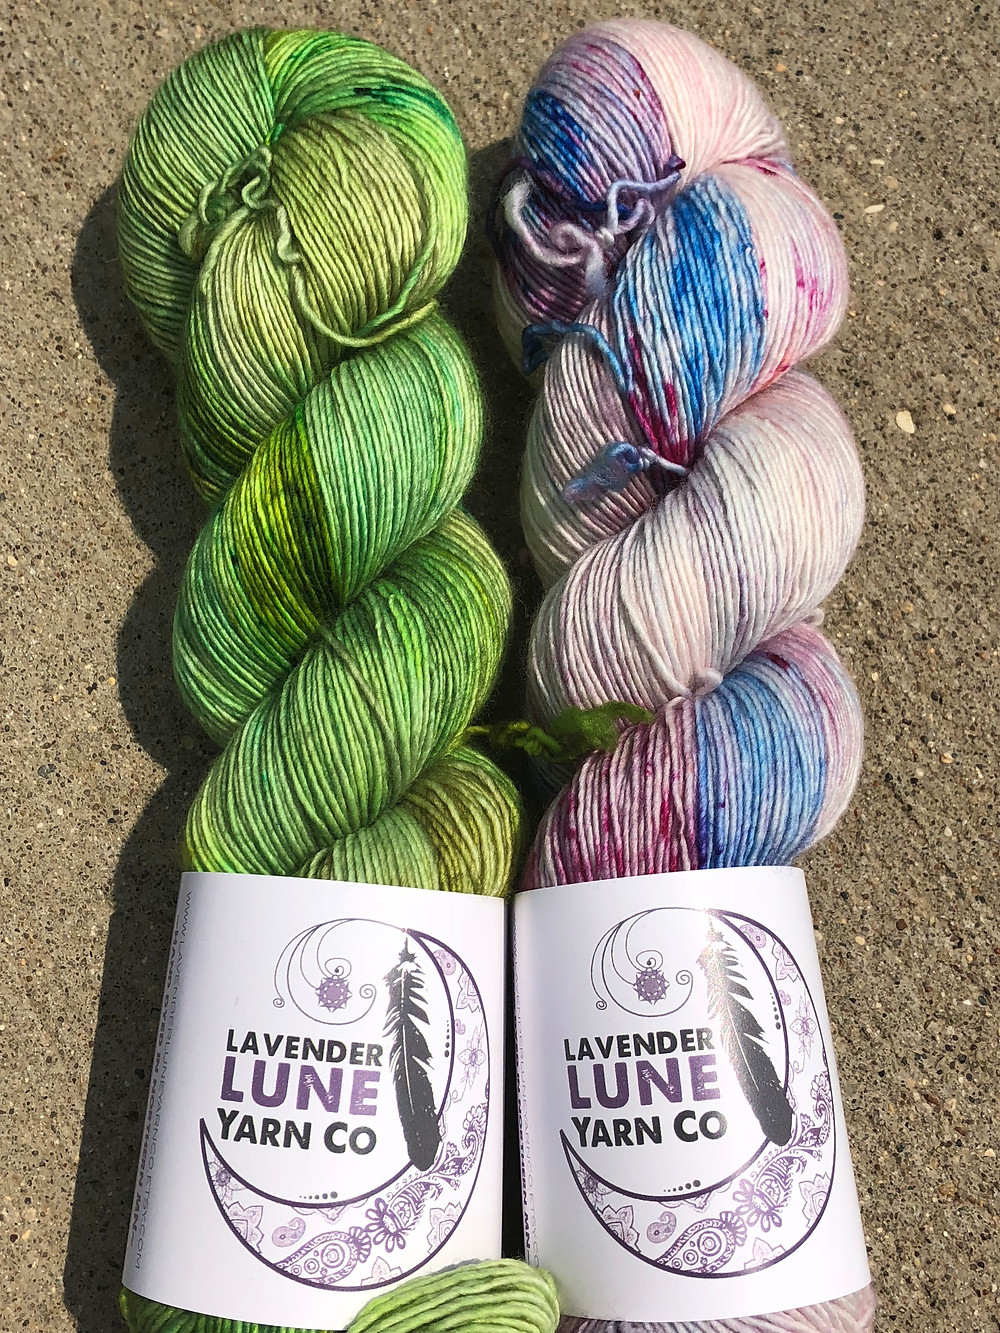 Lavender Lune Yarn Co. Single Ply is now available in the shop!